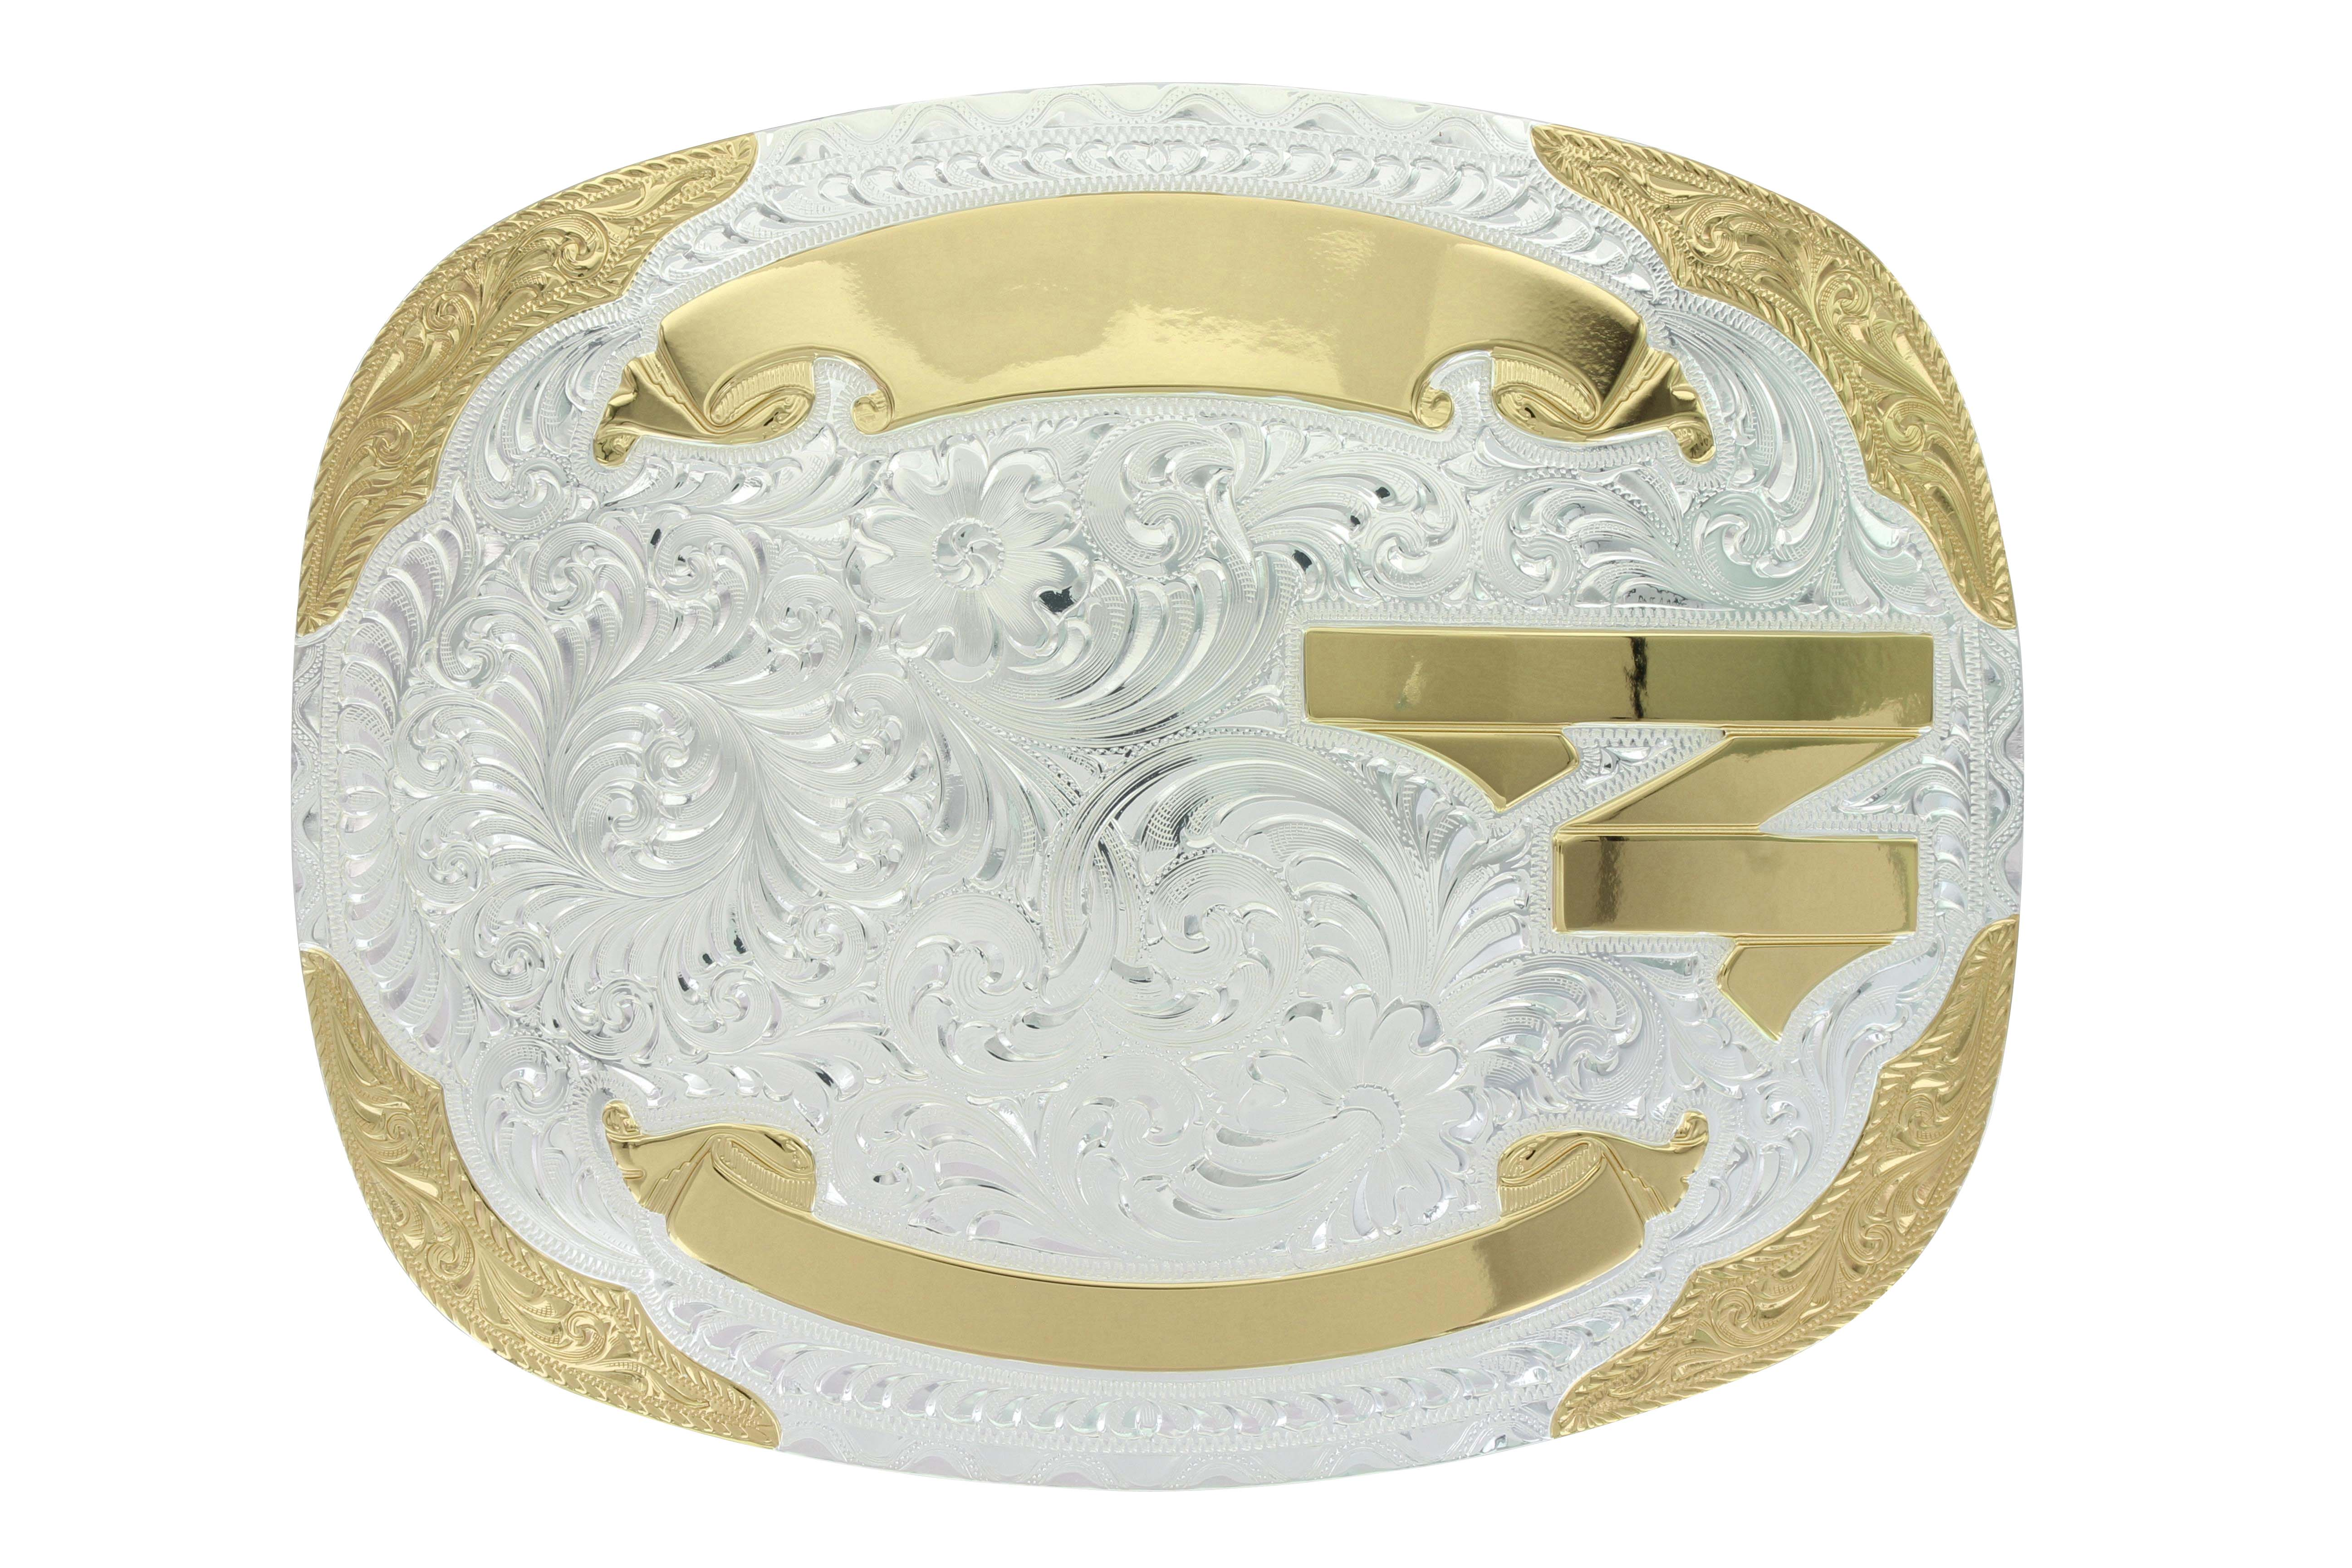 Cut Bank Trophy Buckle (4.25